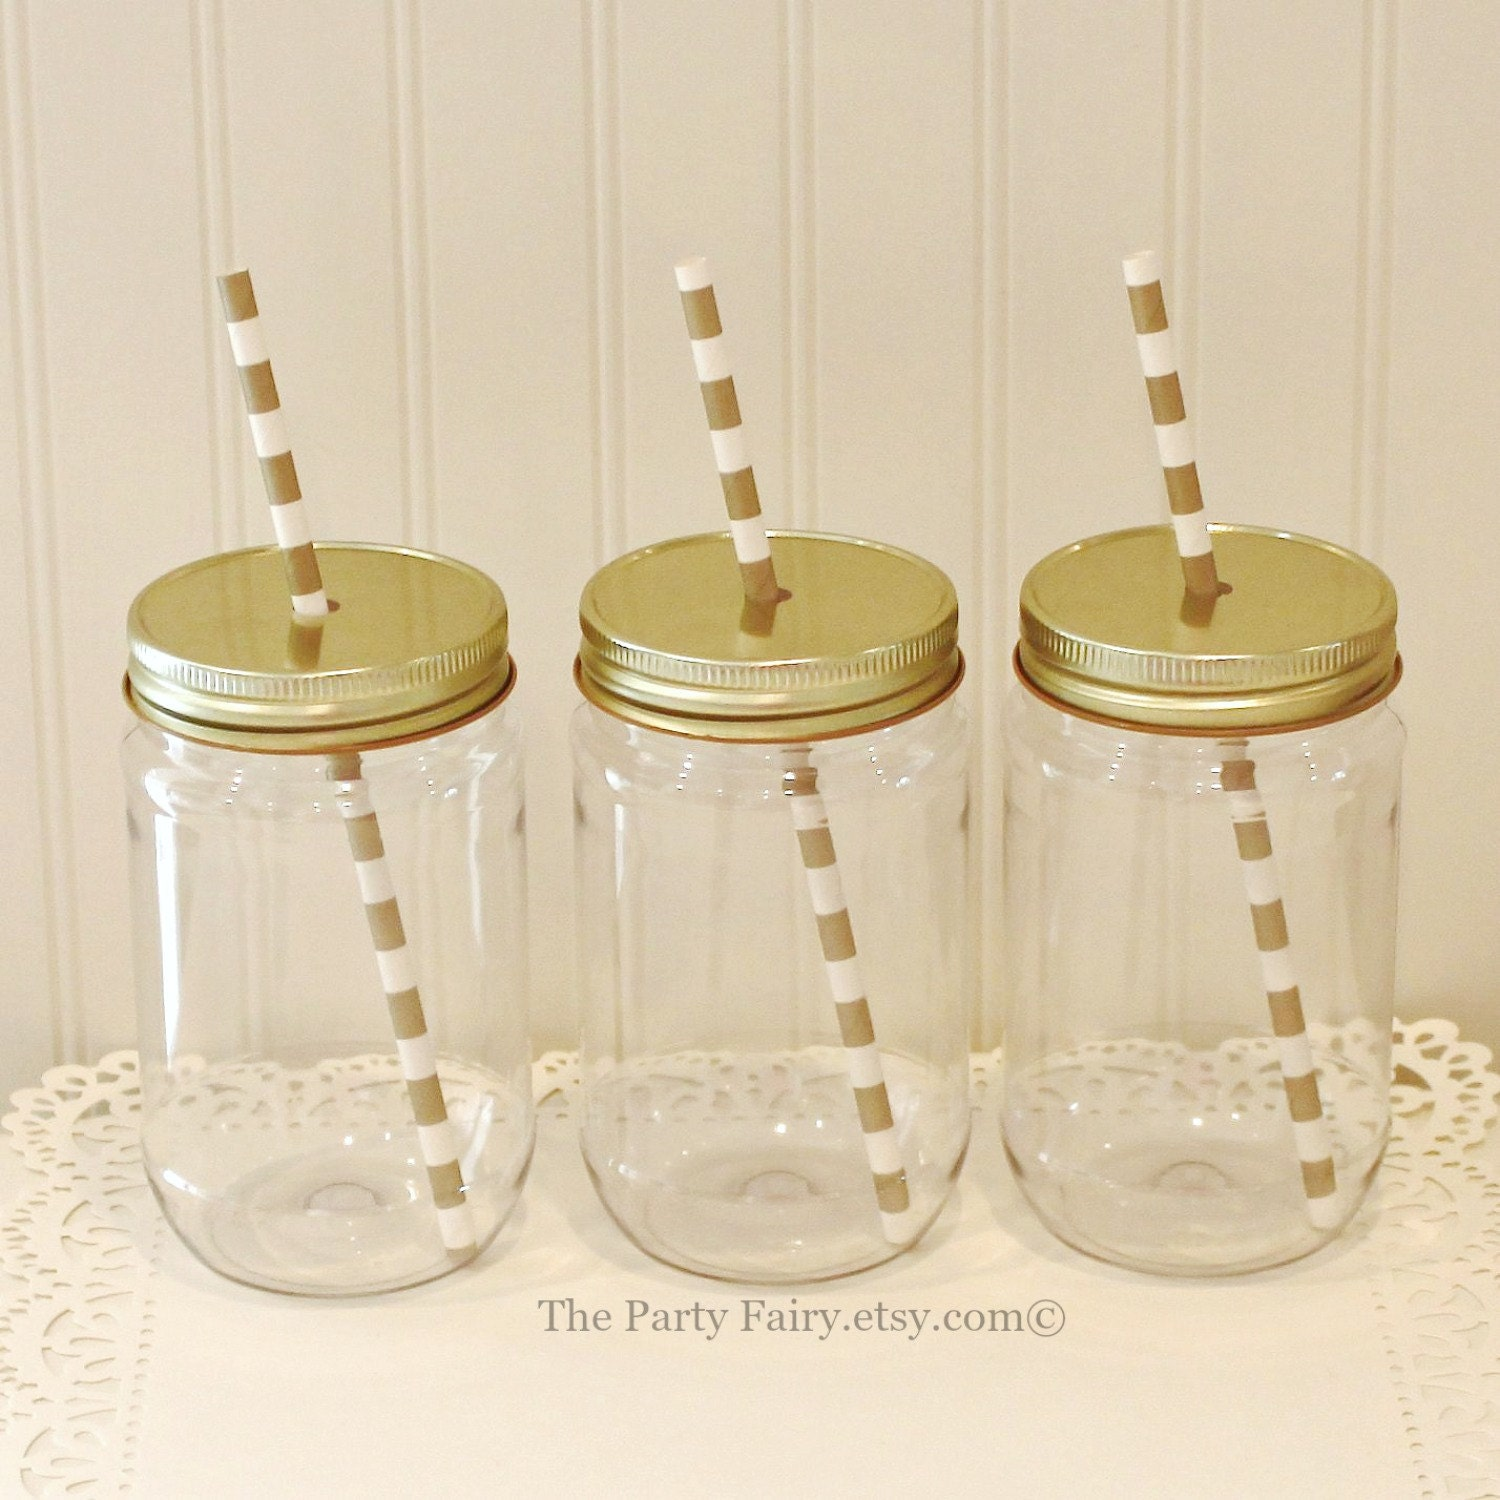 Plastic Mason Jars 10 Plastic Mason Jars with Gold Lids